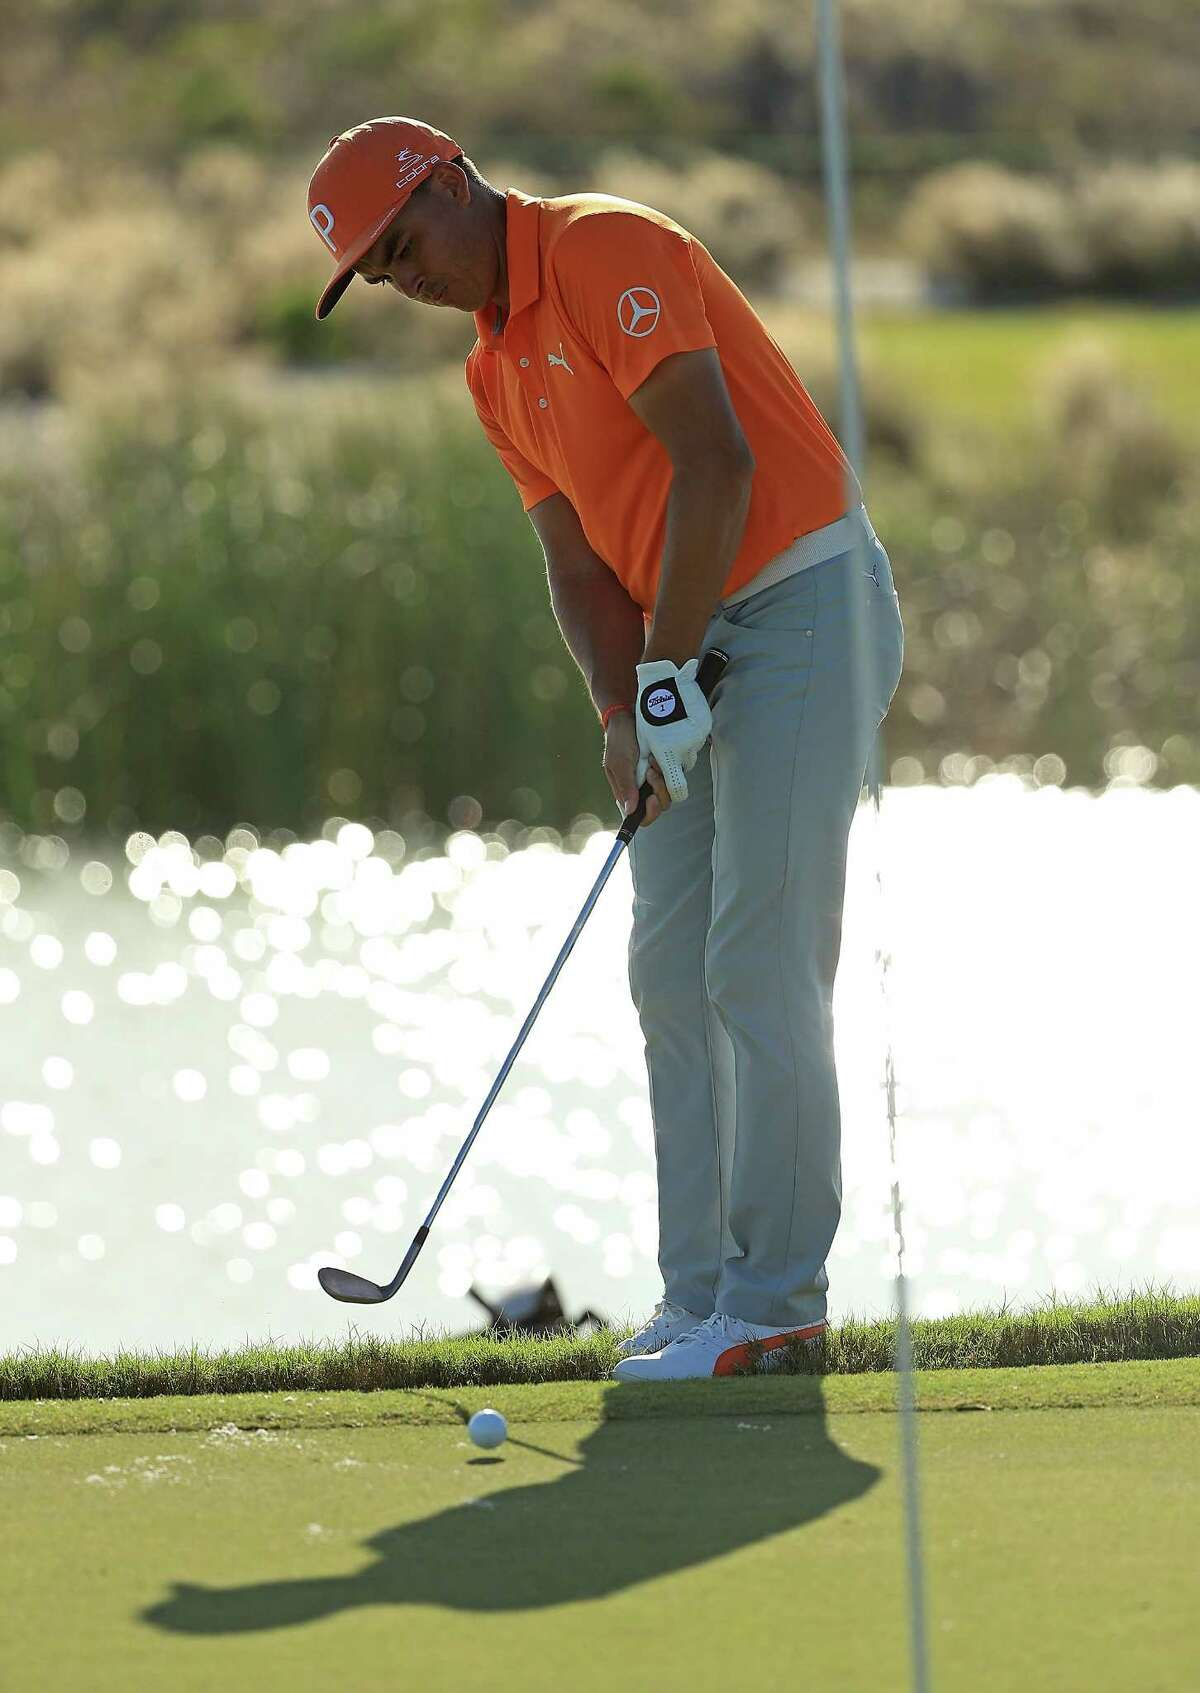 NASSAU, BAHAMAS - DECEMBER 03: Rickie Fowler of the United States chips on the 17th hole during the final round of the Hero World Challenge at Albany, Bahamas on December 3, 2017 in Nassau, Bahamas. (Photo by Mike Ehrmann/Getty Images) ORG XMIT: 775055561